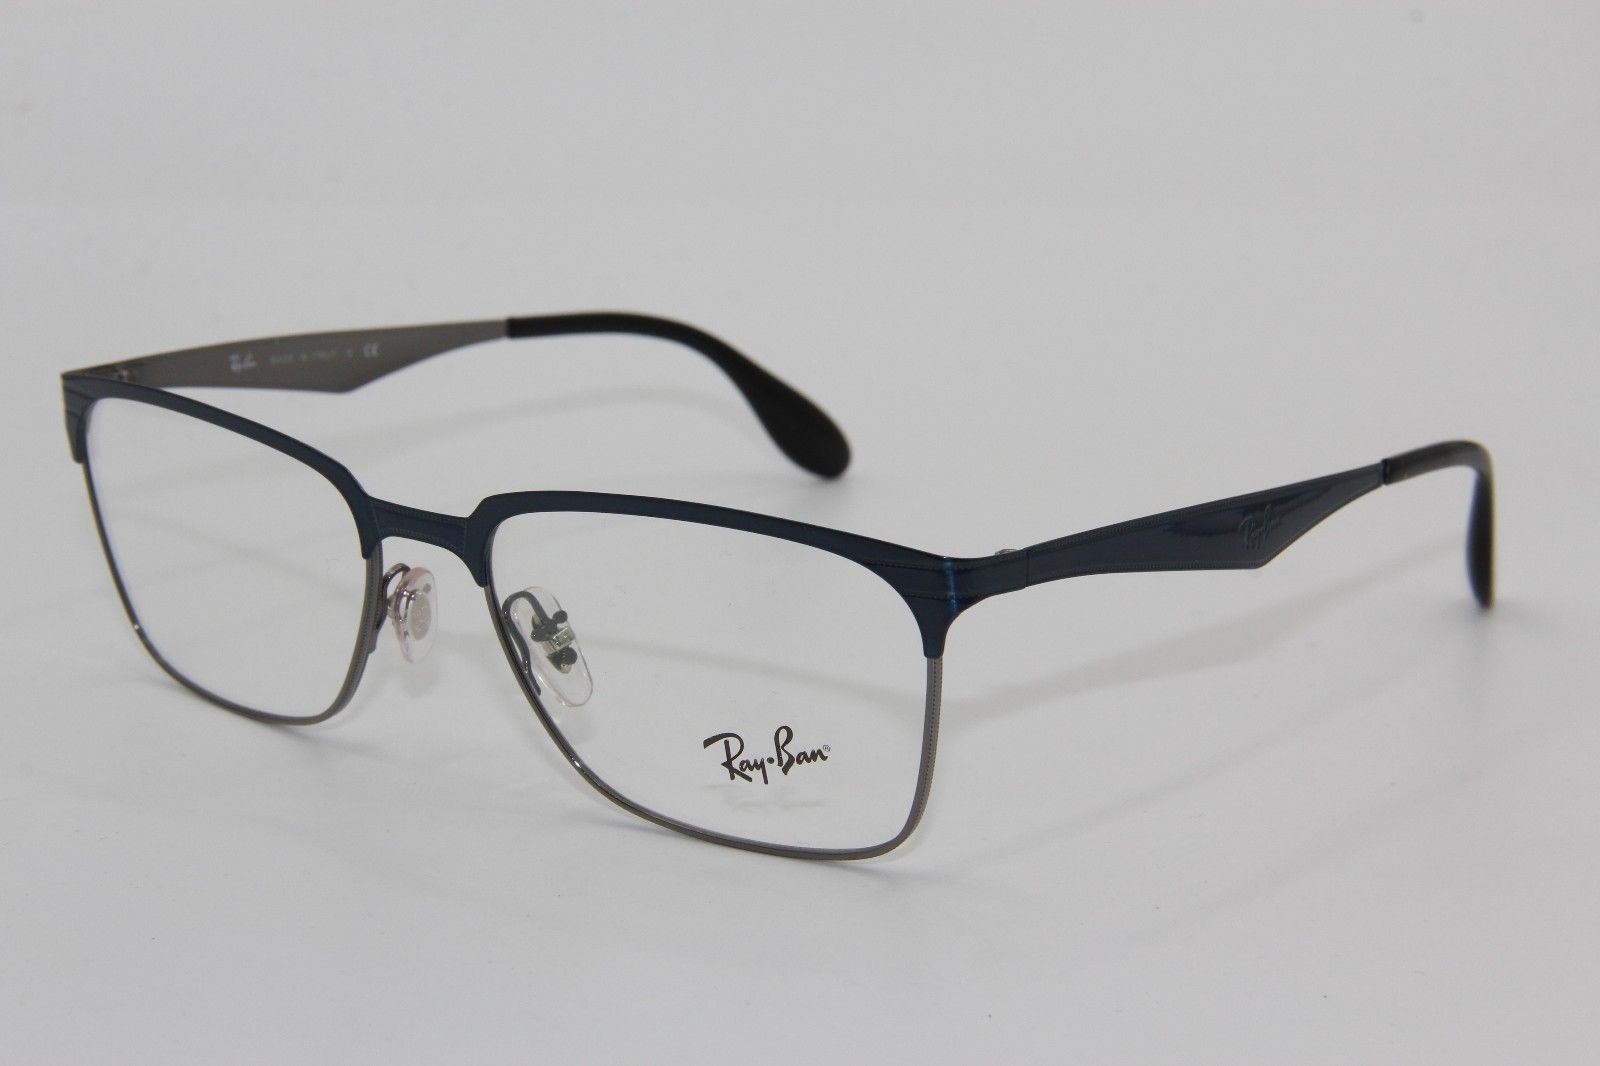 e08b14712f6 57. 57. Previous. NEW RAY-BAN RB 6344 2853 BLUE AUTHENTIC RX ...